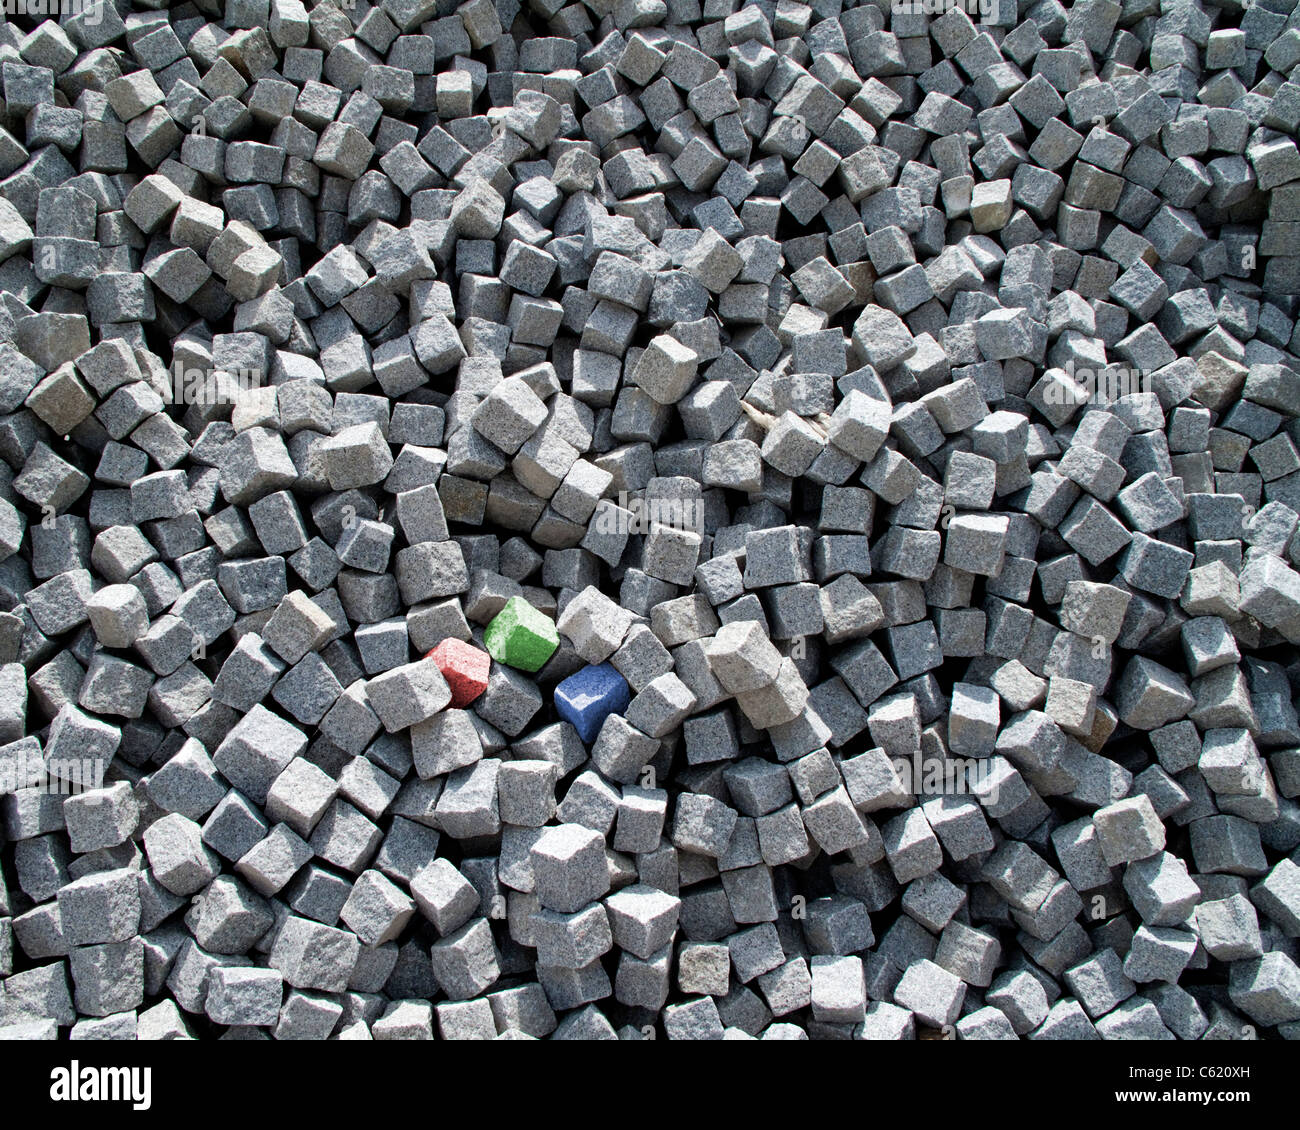 RGB CONCEPT: Three coloured granite cubes (red, green & blue) amongst a collection of grey granite sets. - Stock Image